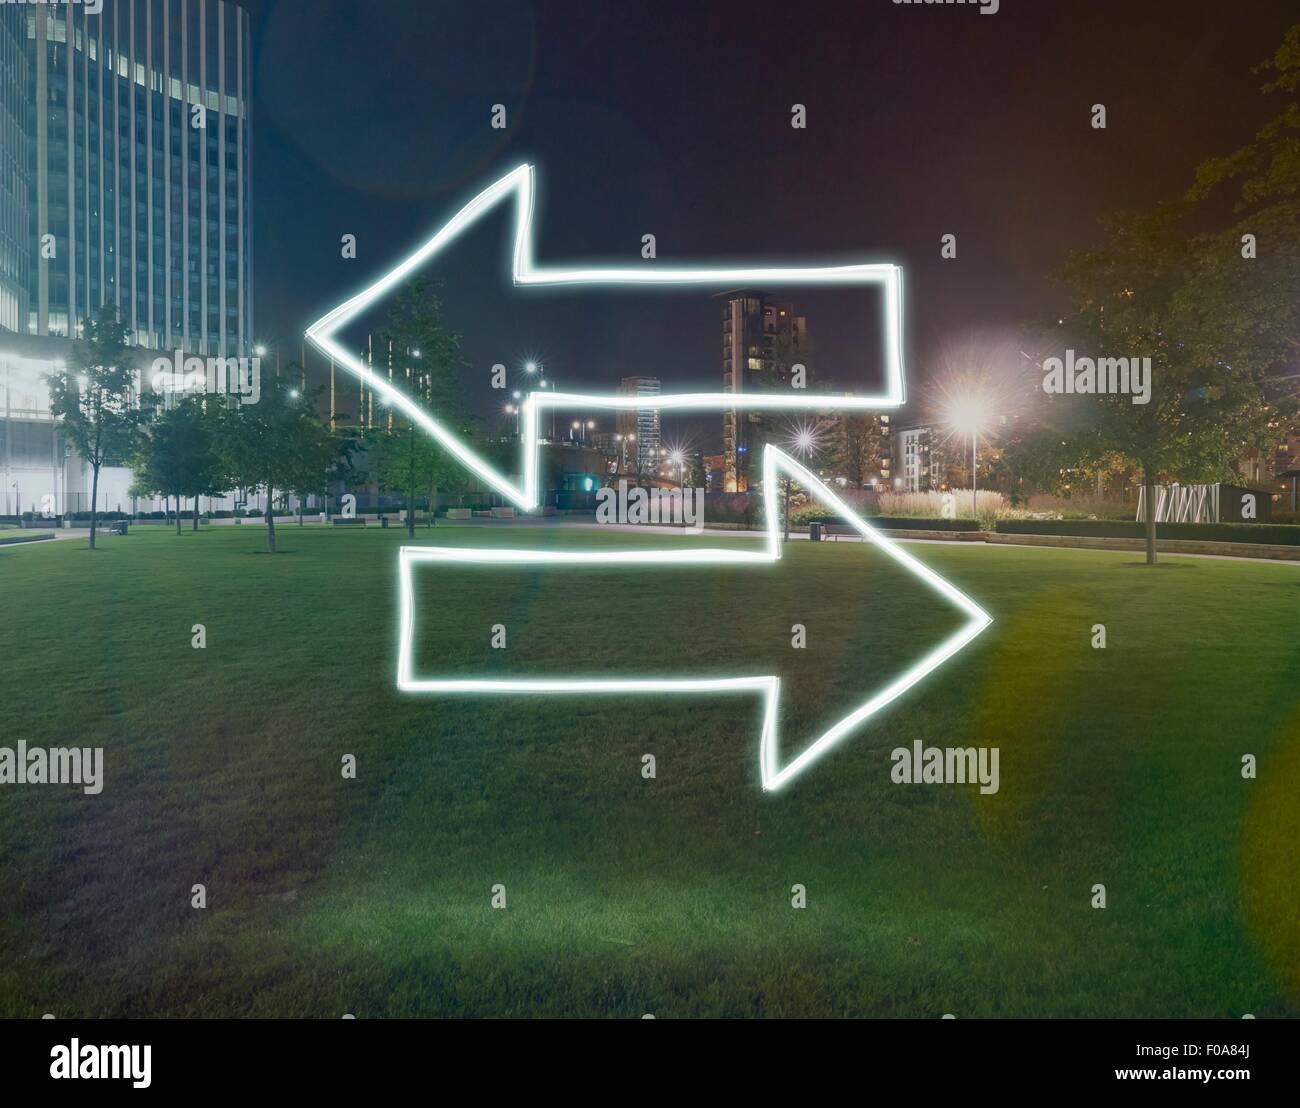 Glowing direction arrows pointing opposite directions at night, London, UK - Stock Image